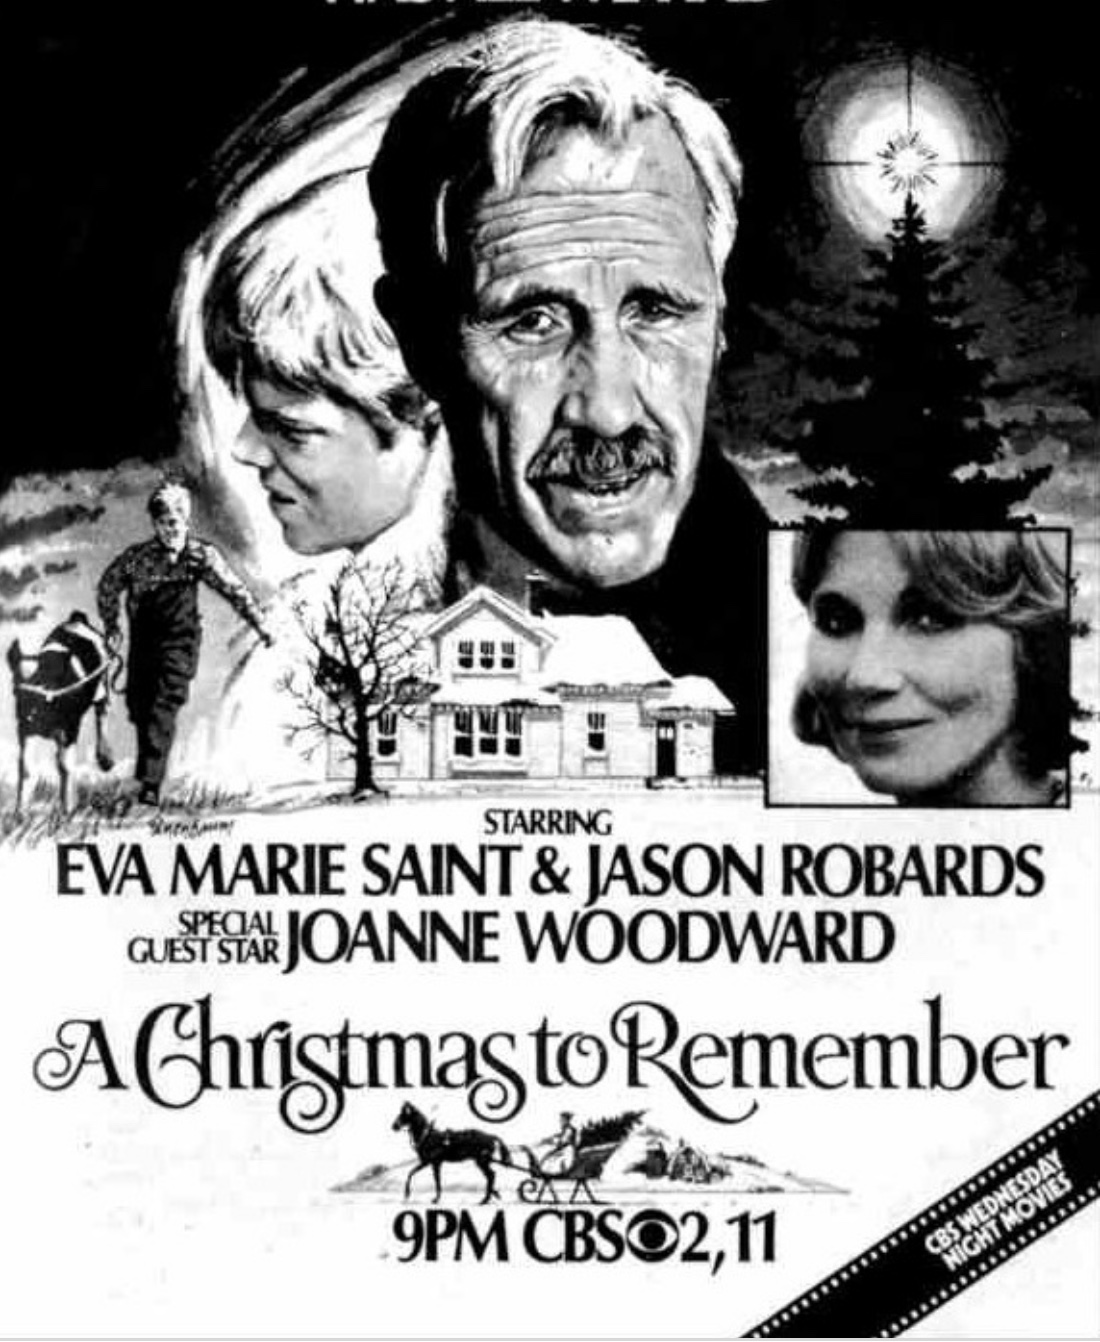 Jason Robards and Eva Marie Saint in A Christmas to Remember (1978)